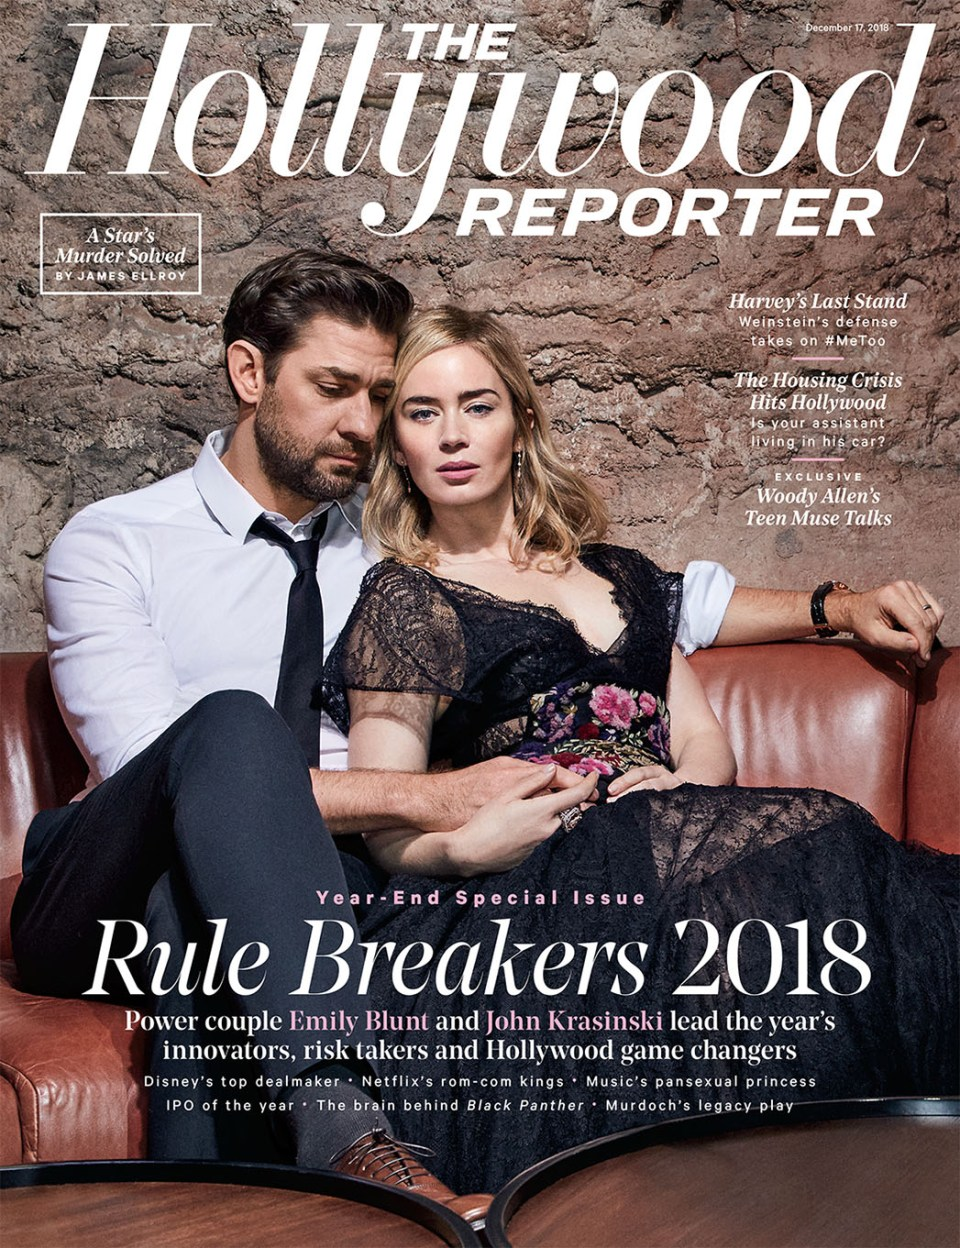 thr_issue_41_cover-photographed_by_andrew_hetherington-p-2018-41cover_lores-p-2018